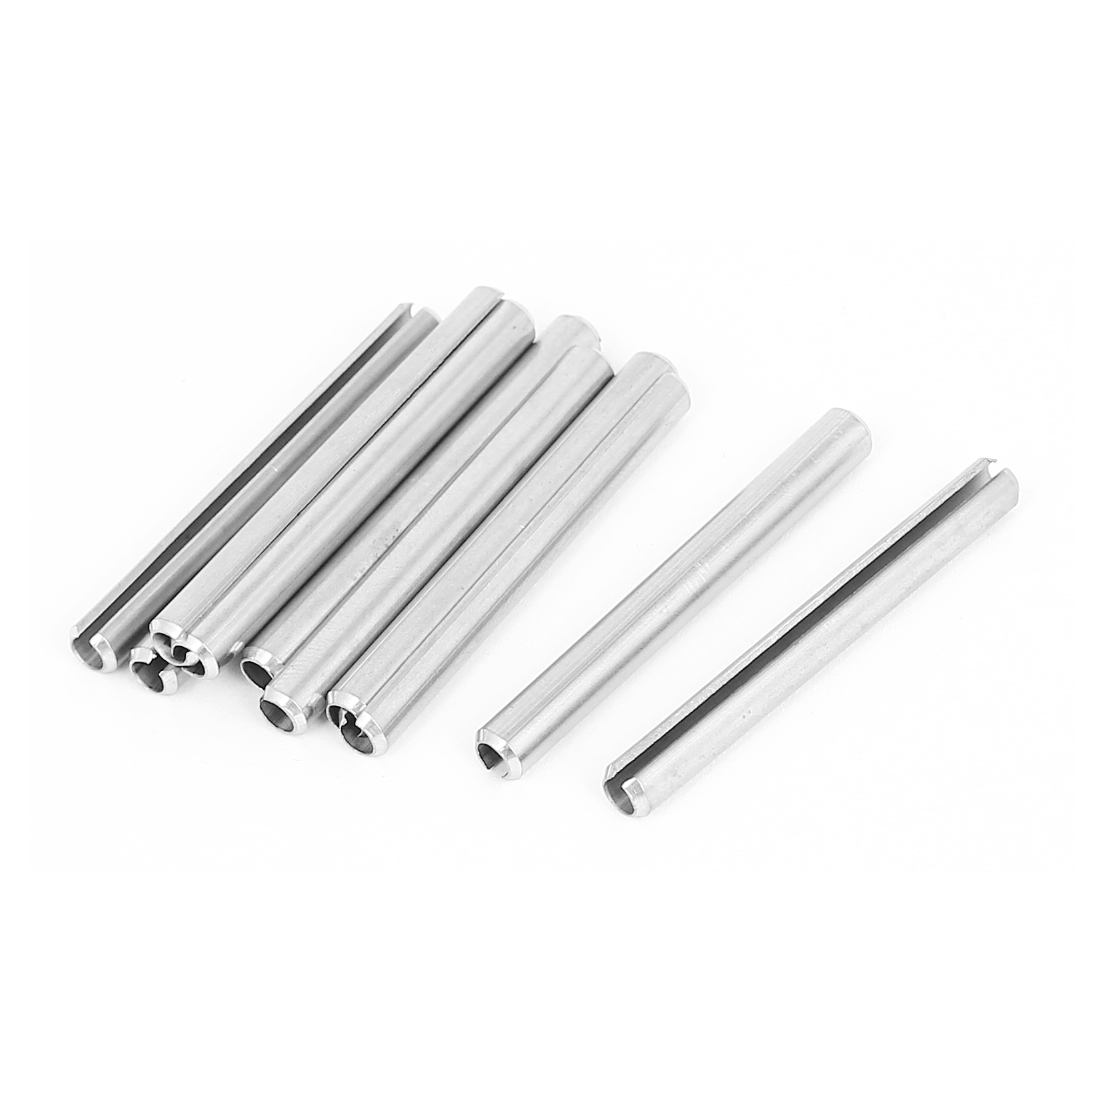 M5x50mm 304 Stainless Steel Split Spring Roll Dowel Pins Fasteners 10Pcs